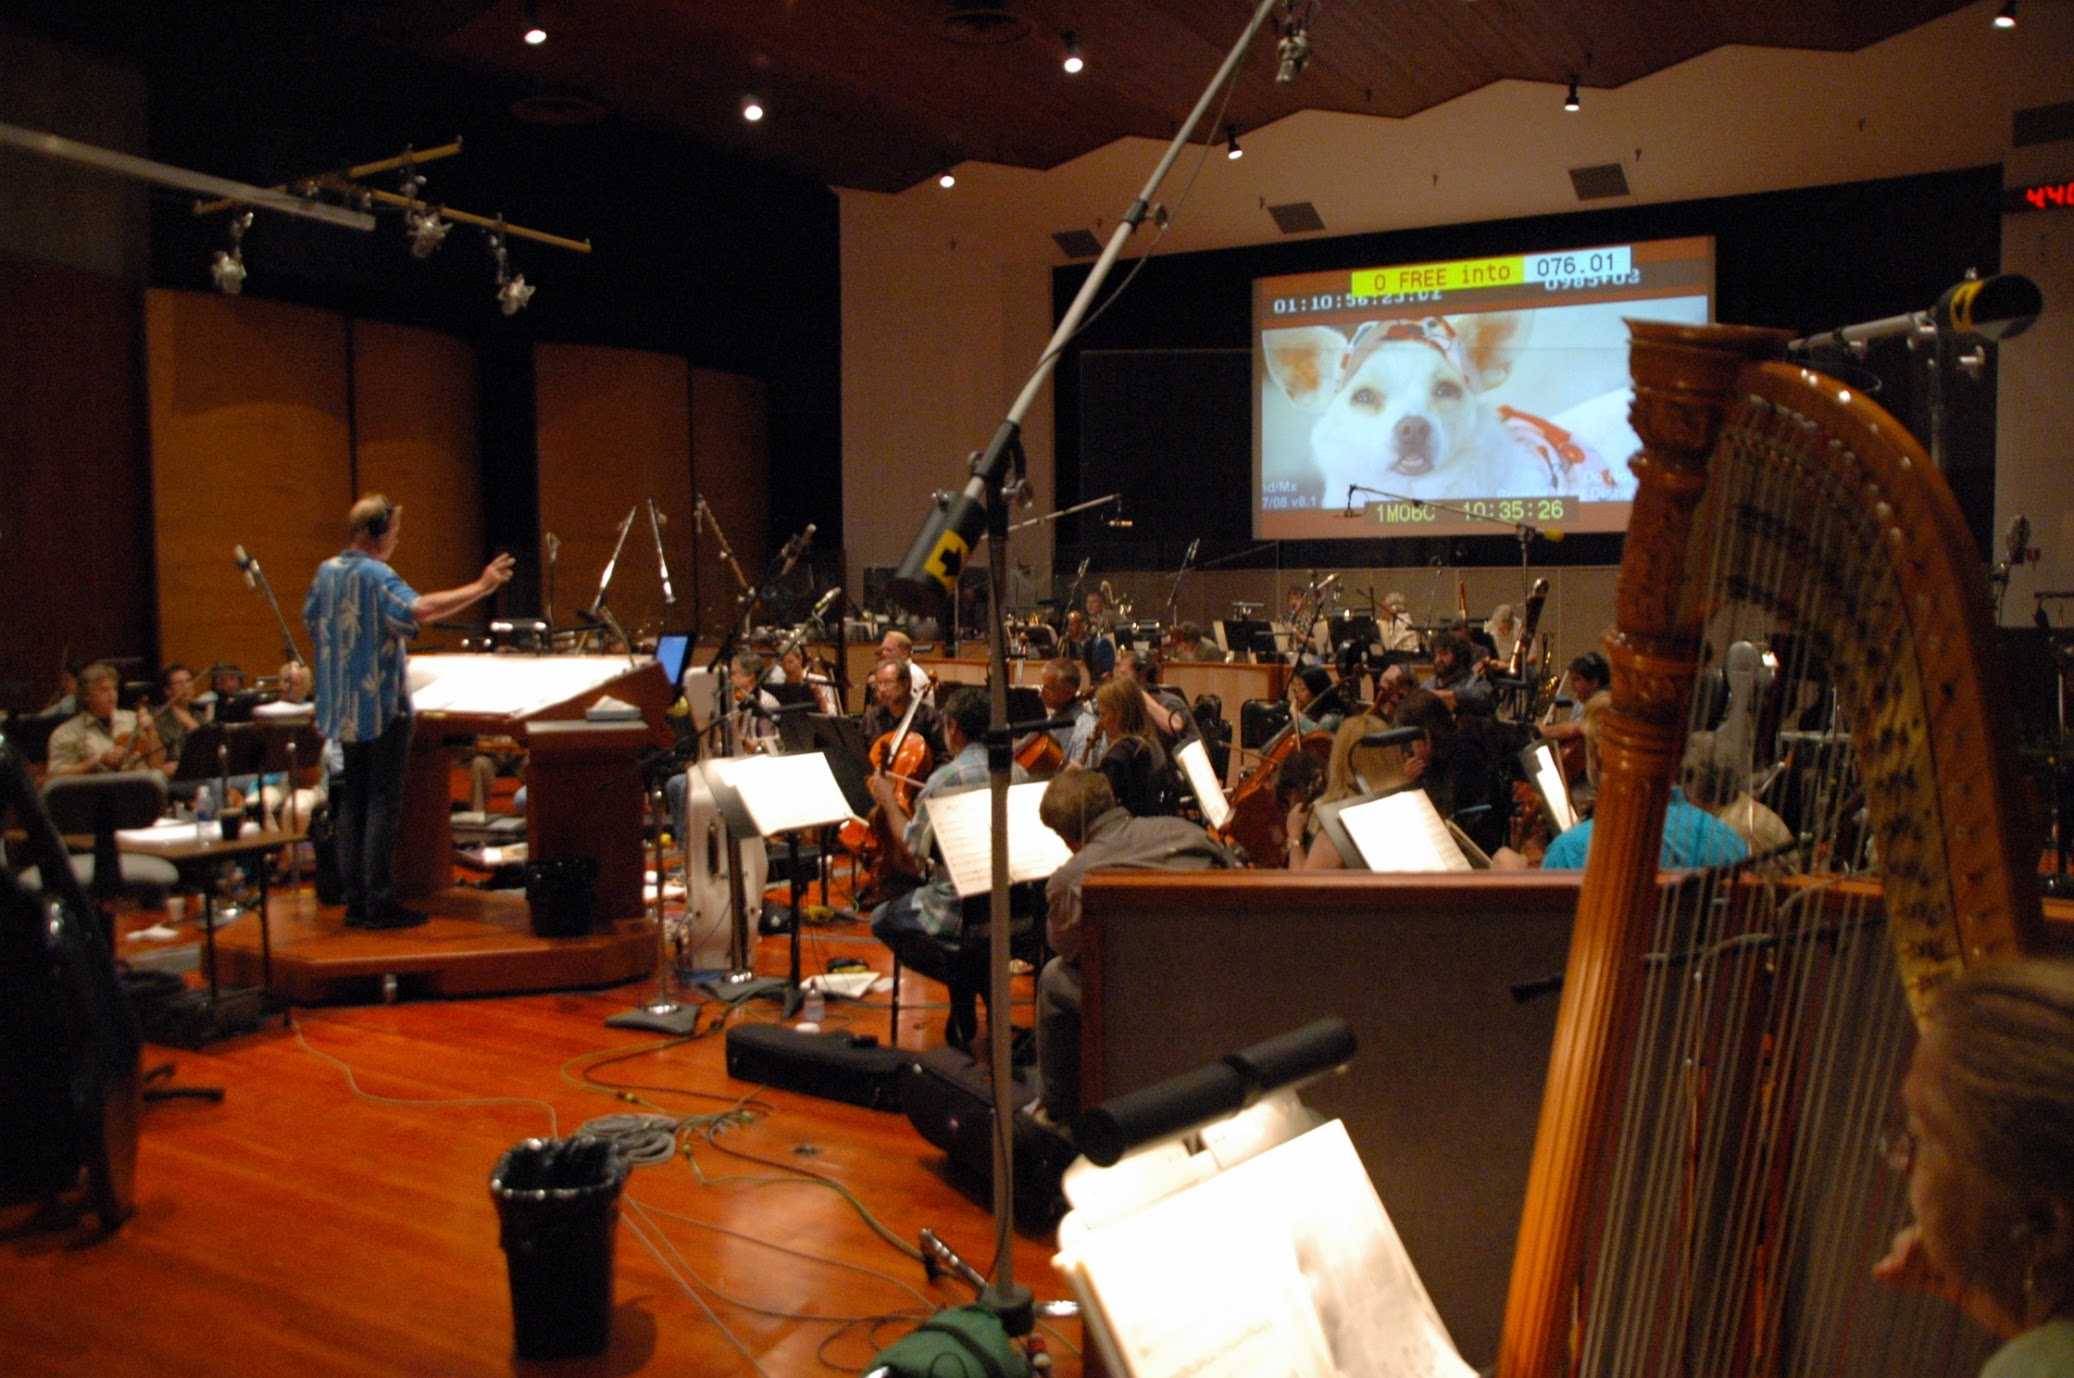 Beverly Hills Chihuaha session with Heitor Pereira at Warner Bros.jpg